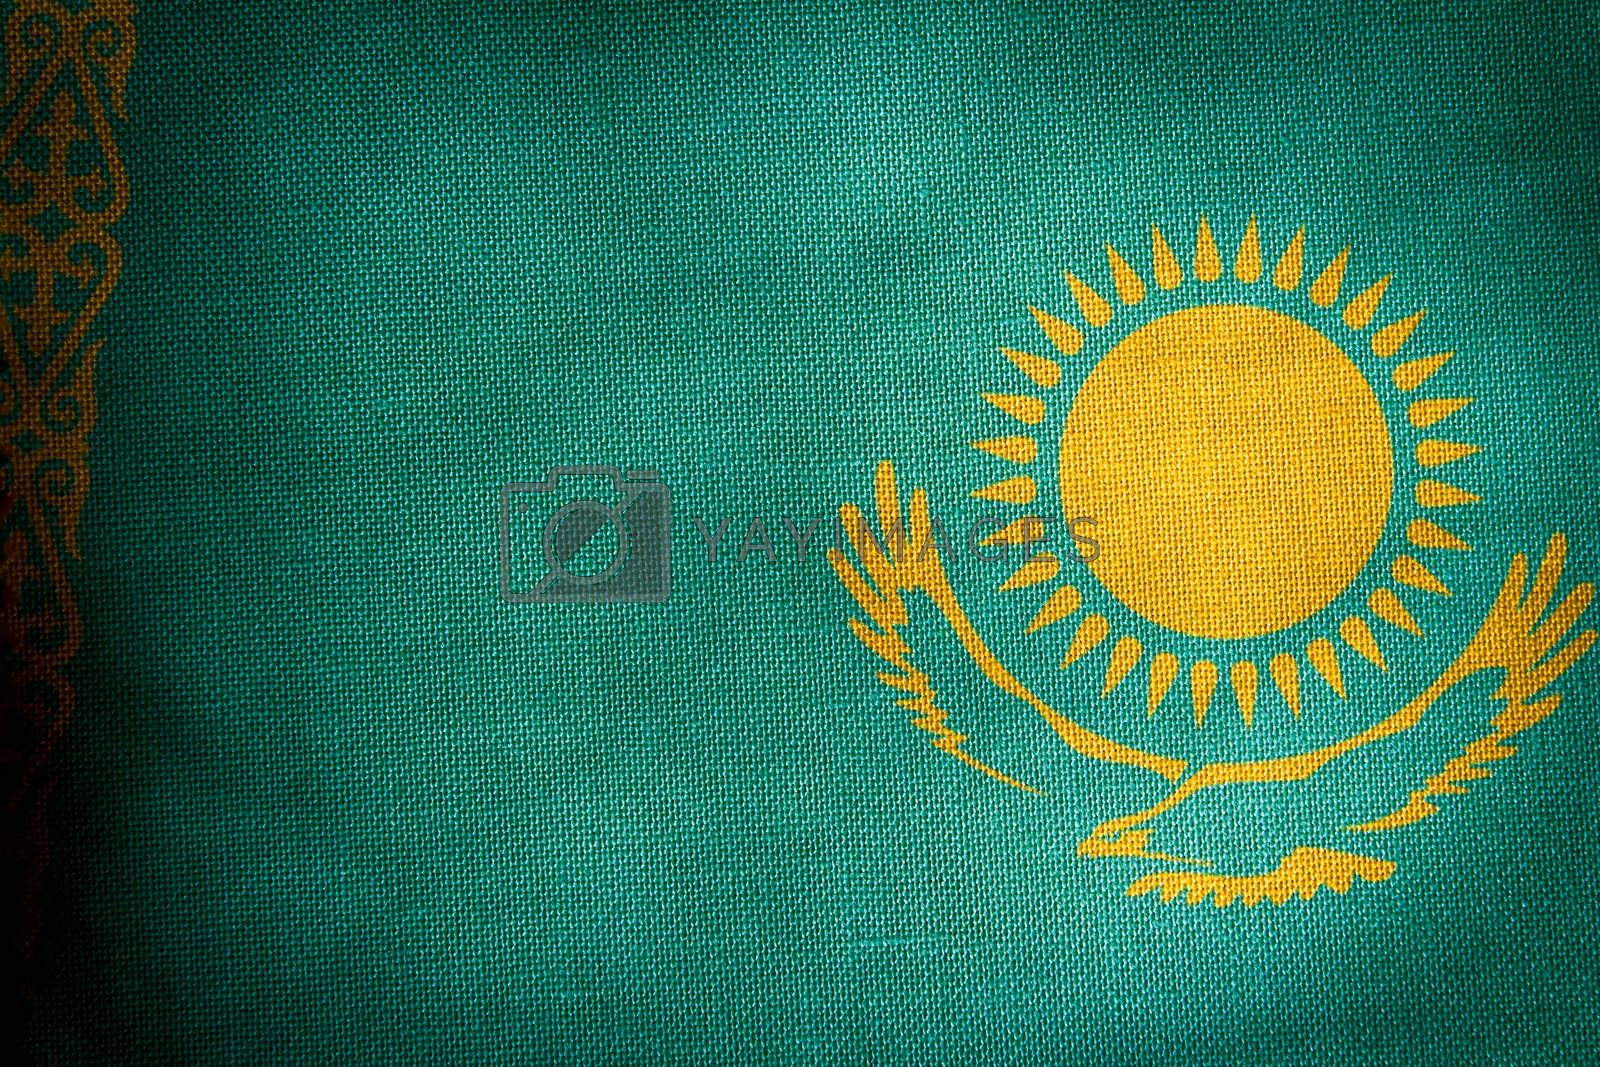 The central part of the flag of the state of Kazakhstan